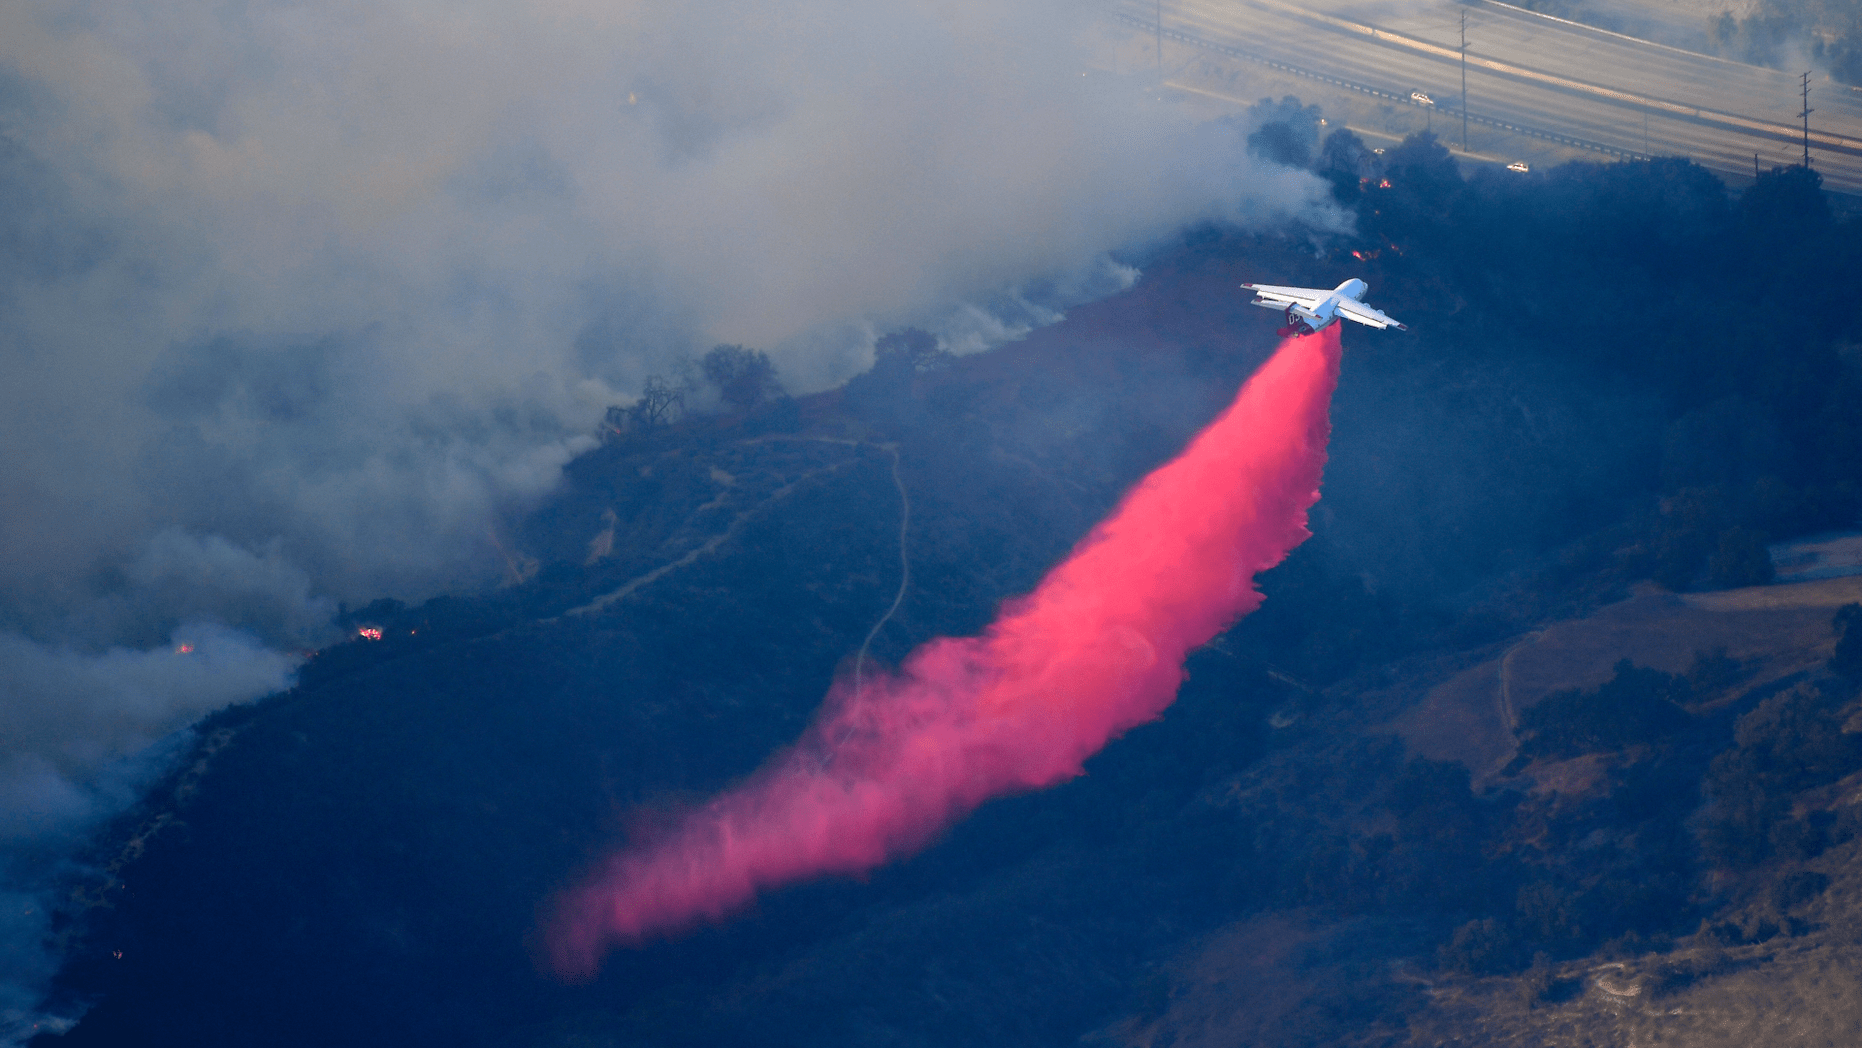 An air tanker drops flame retardant to protect homes as fires burn Friday, Nov. 9, 2018, as seen from a helicopter over the Calabasas section of Los Angeles. Flames driven by powerful winds torched dozens of hillside homes in Southern California, burning parts of tony Calabasas and mansions in Malibu and forcing tens of thousands of people - including some celebrities - to flee as the fire marched across the Santa Monica Mountains toward the sea. The cause of the blazes was not known. (AP Photo/Mark J. Terrill)